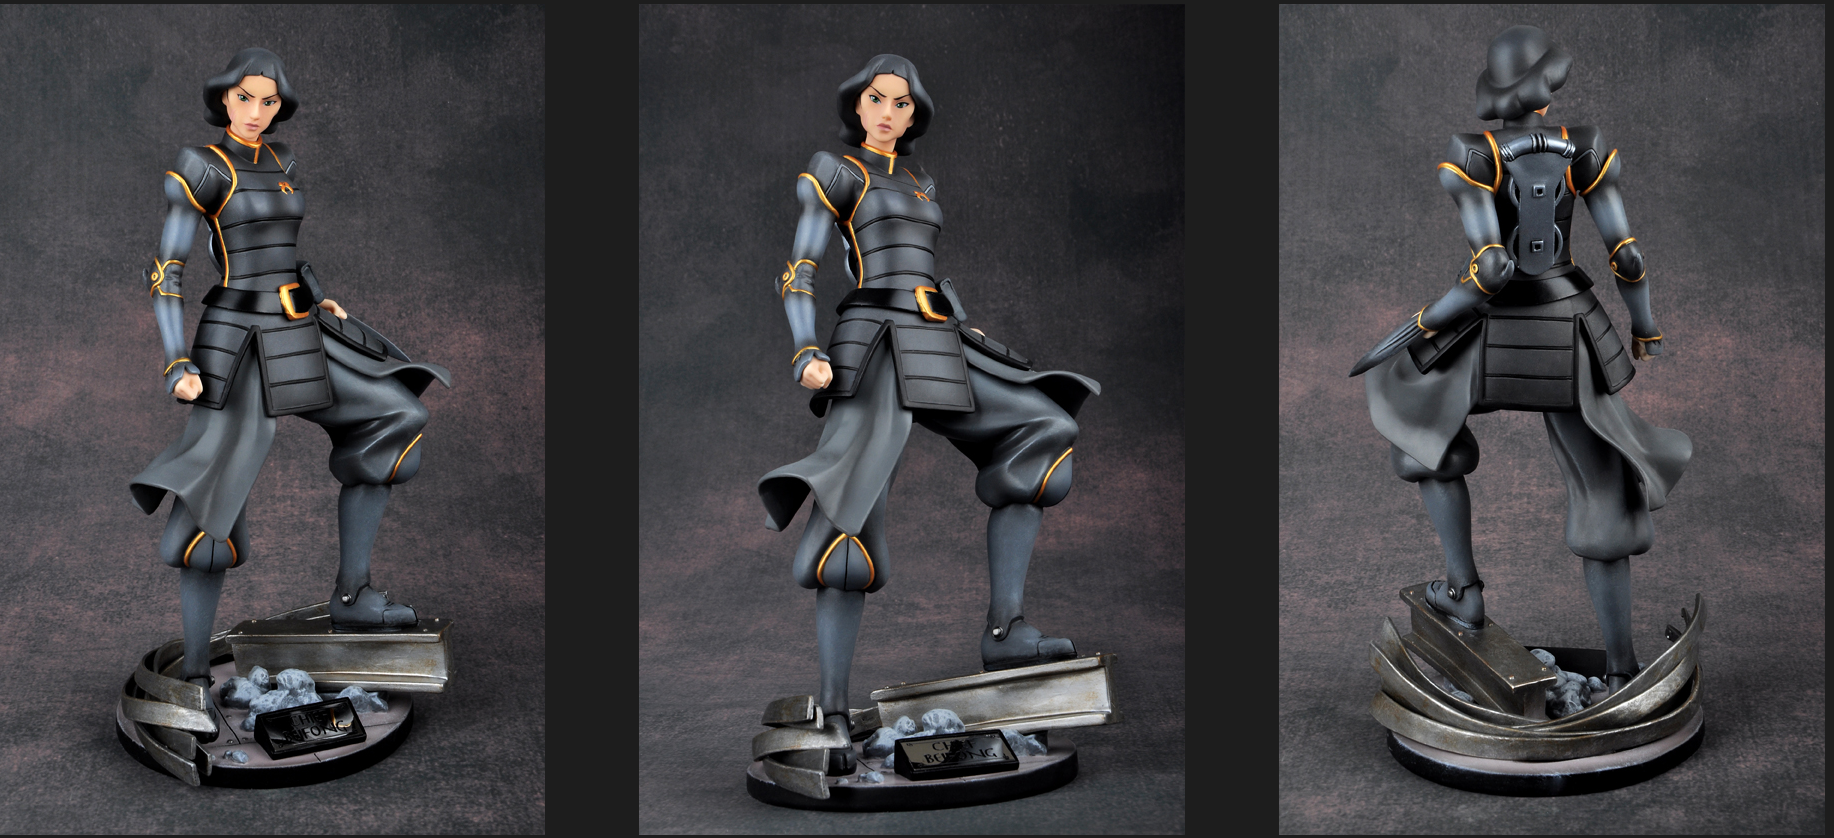 Legend Of Korra Toys : Nickelodeon sdcc exclusives include legend of korra